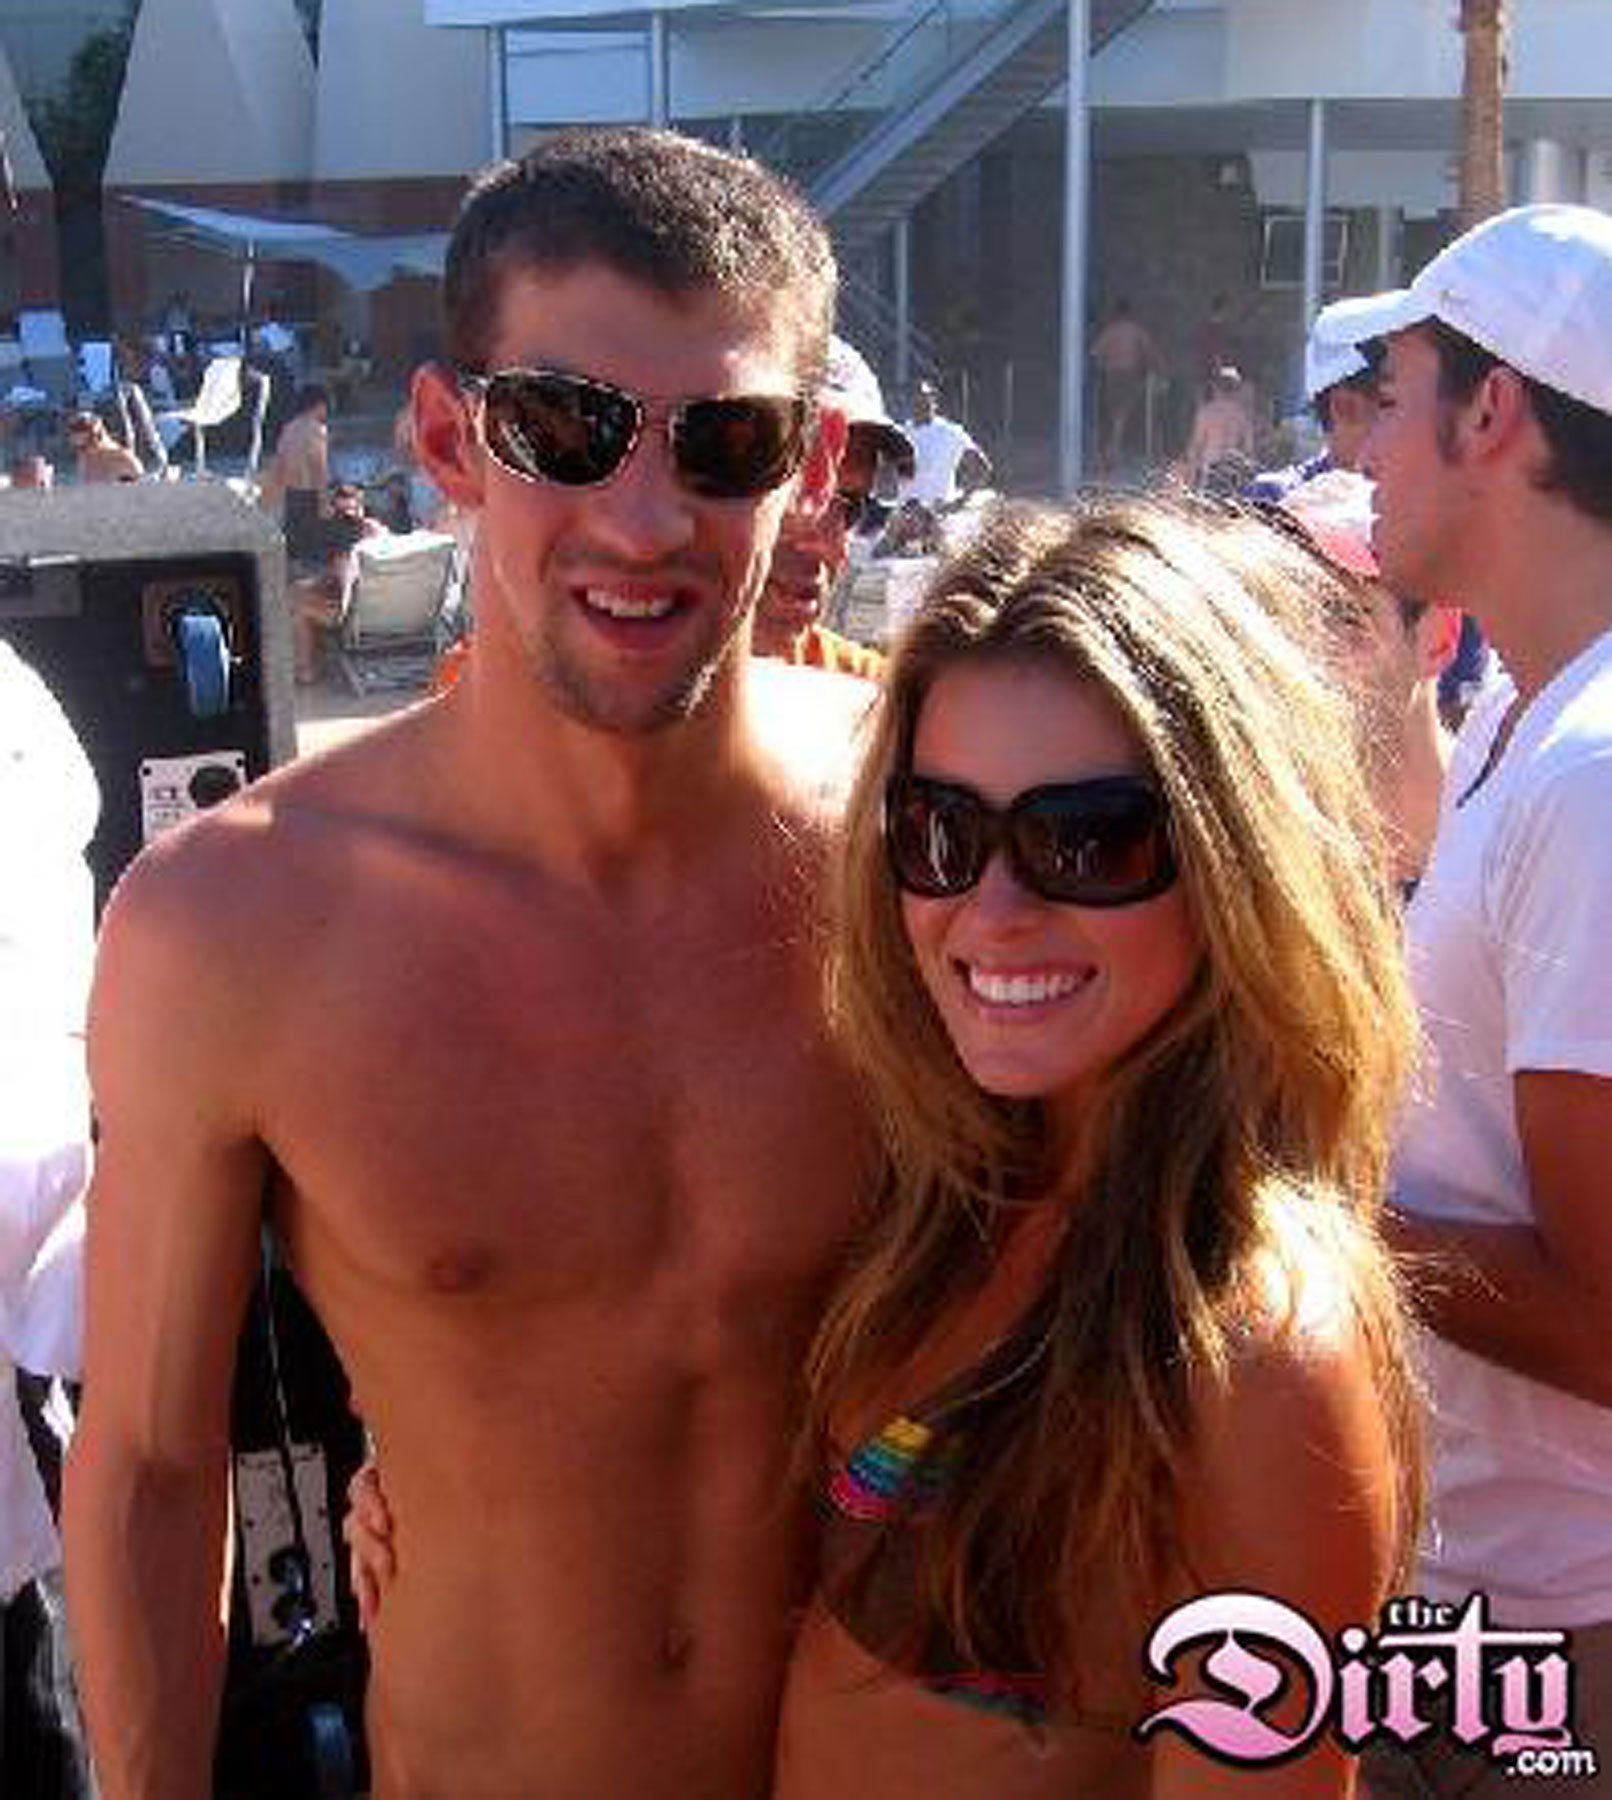 Michael Phelps Parties With Miss California